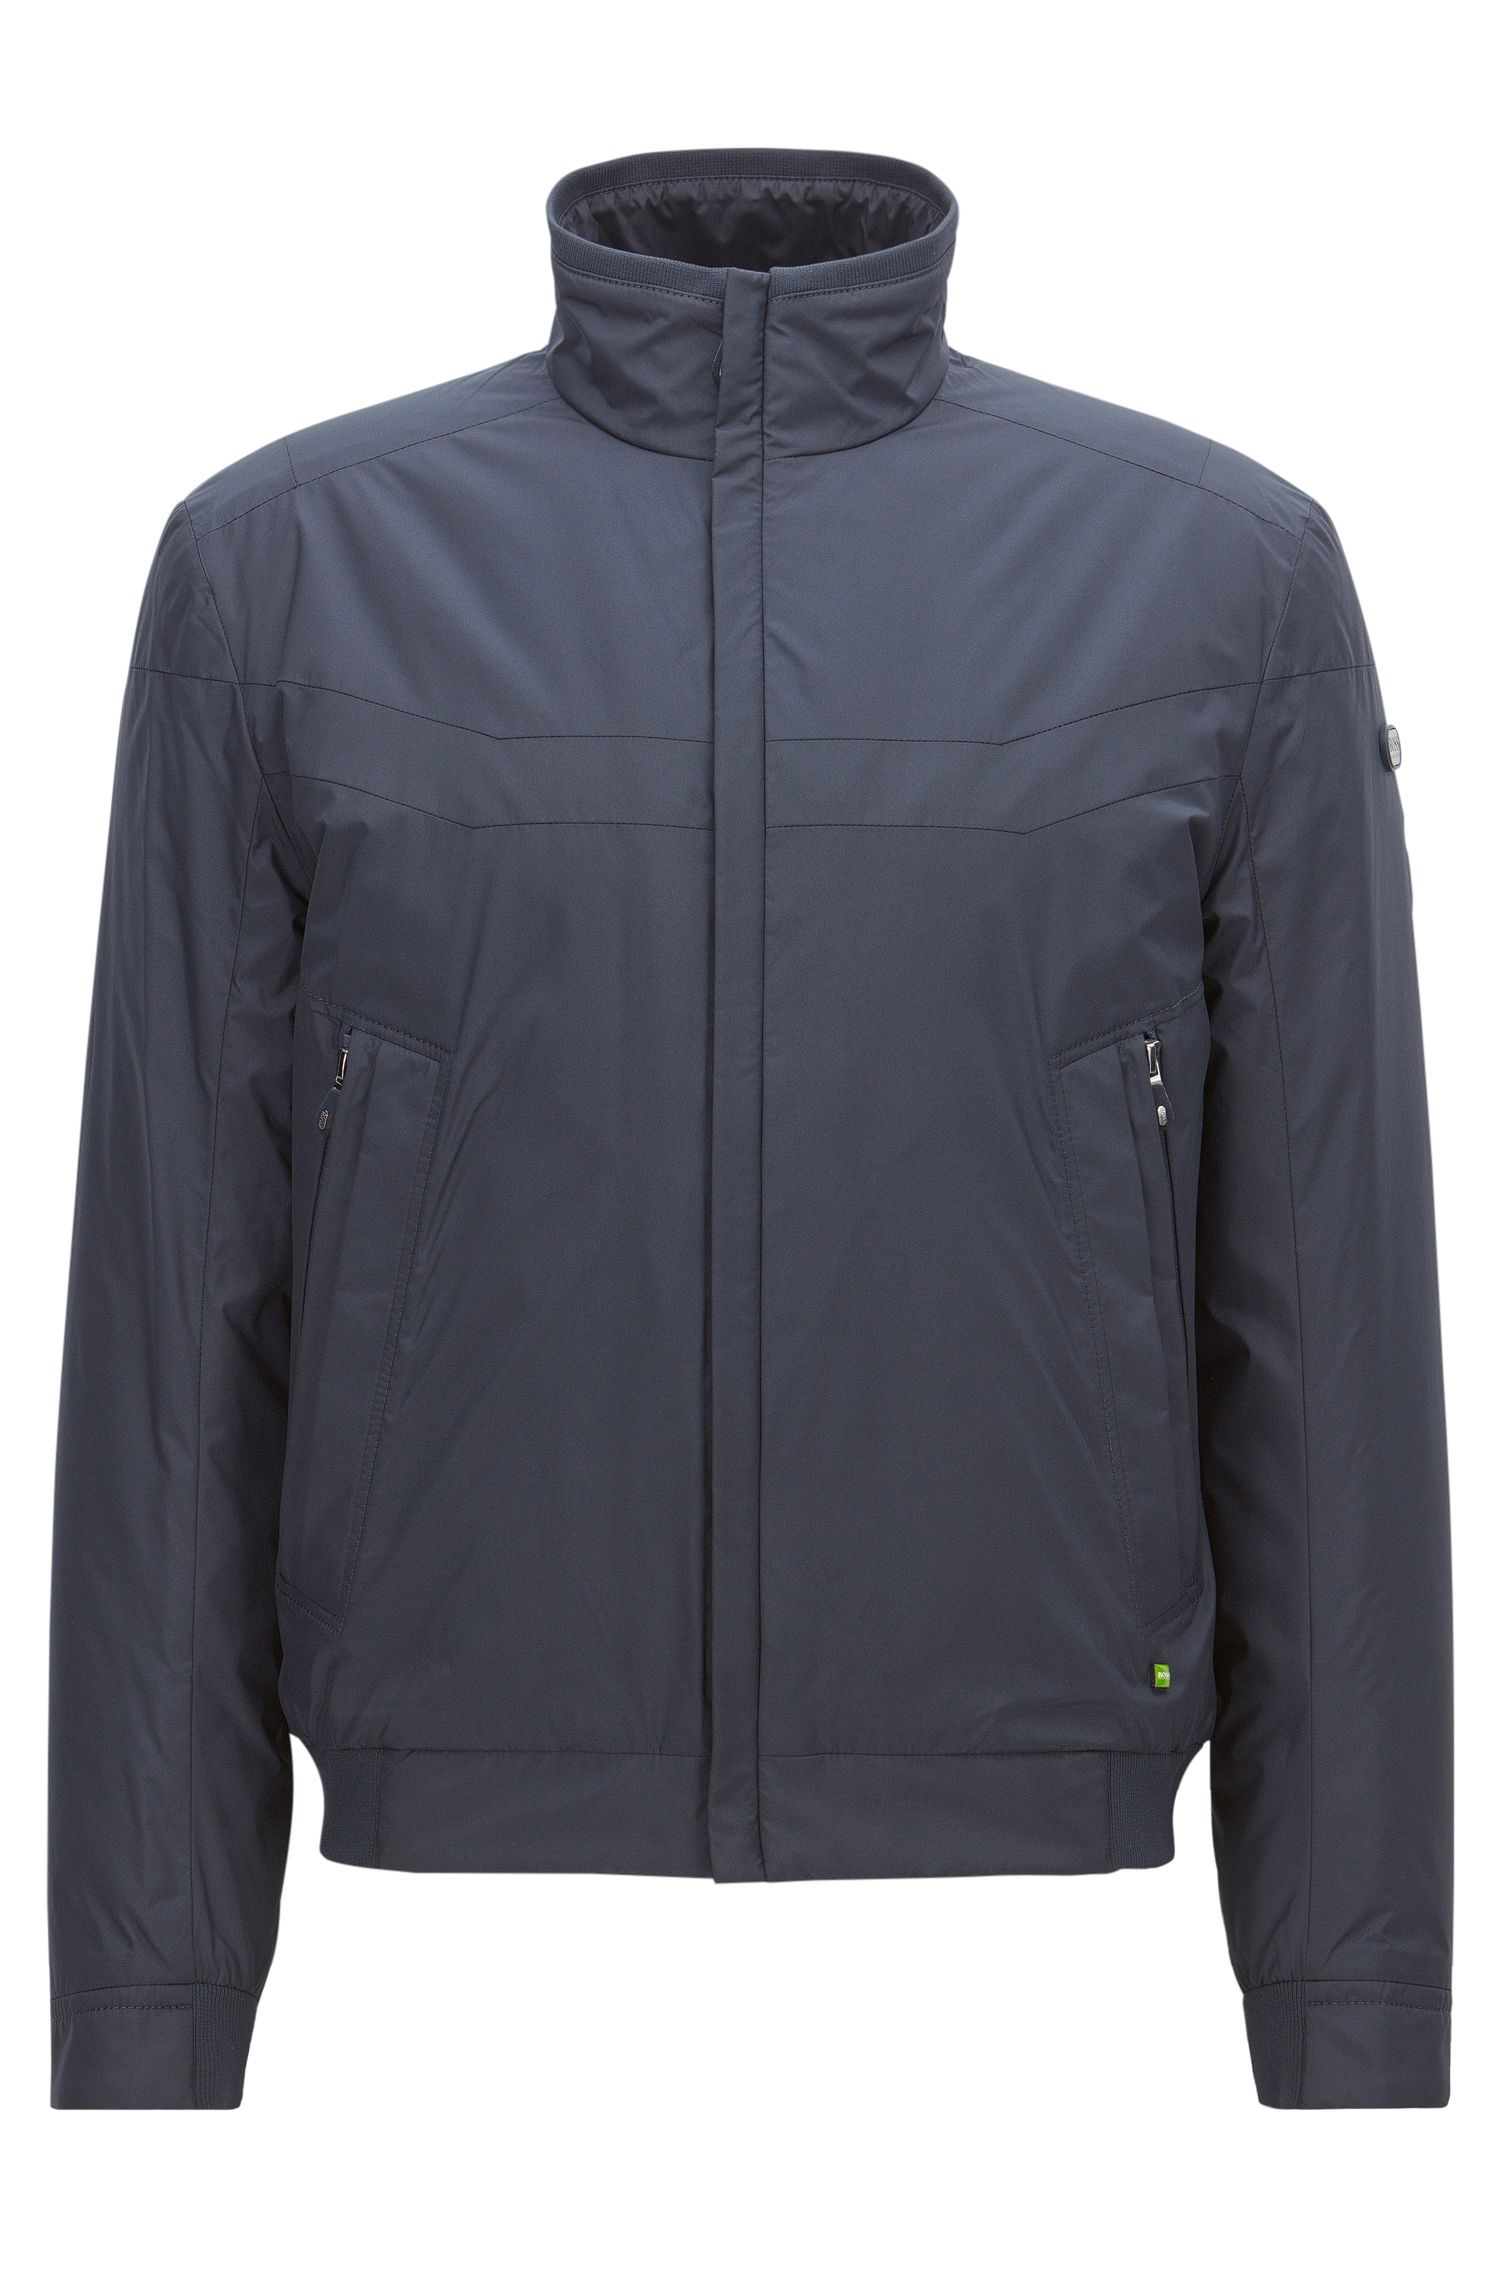 Regular-fit jacket in technical fabric